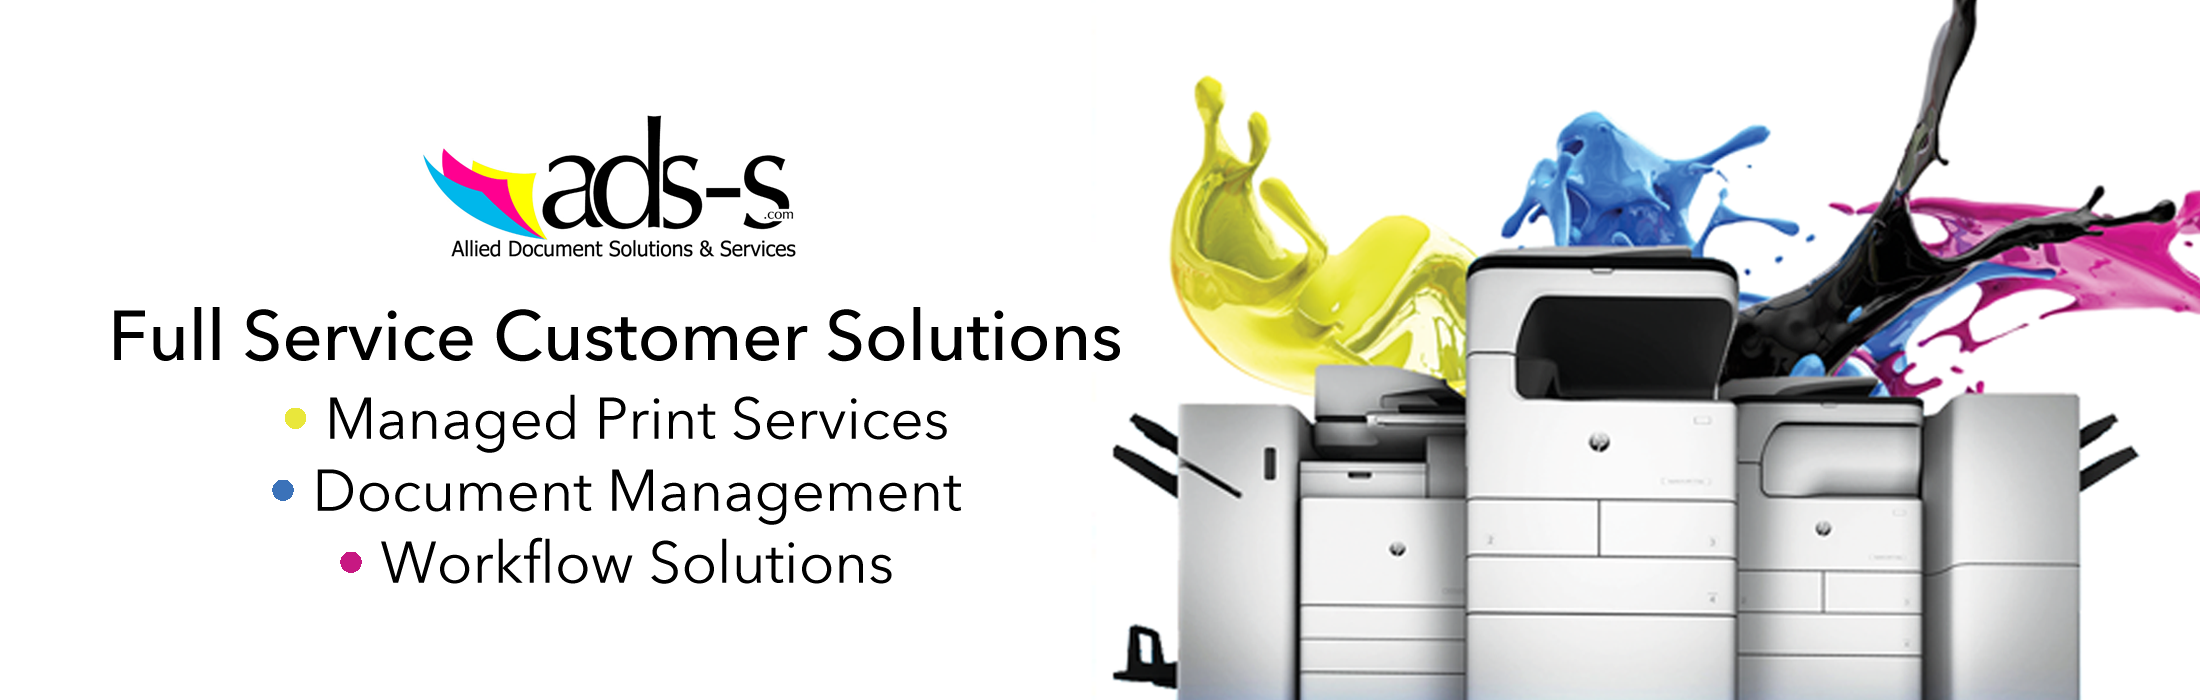 solution caso allied office products Currently allied office products charges customers a flat fee on product cost this case study was performed in order to see if allied office products should switch and implement the sales based pricing system.